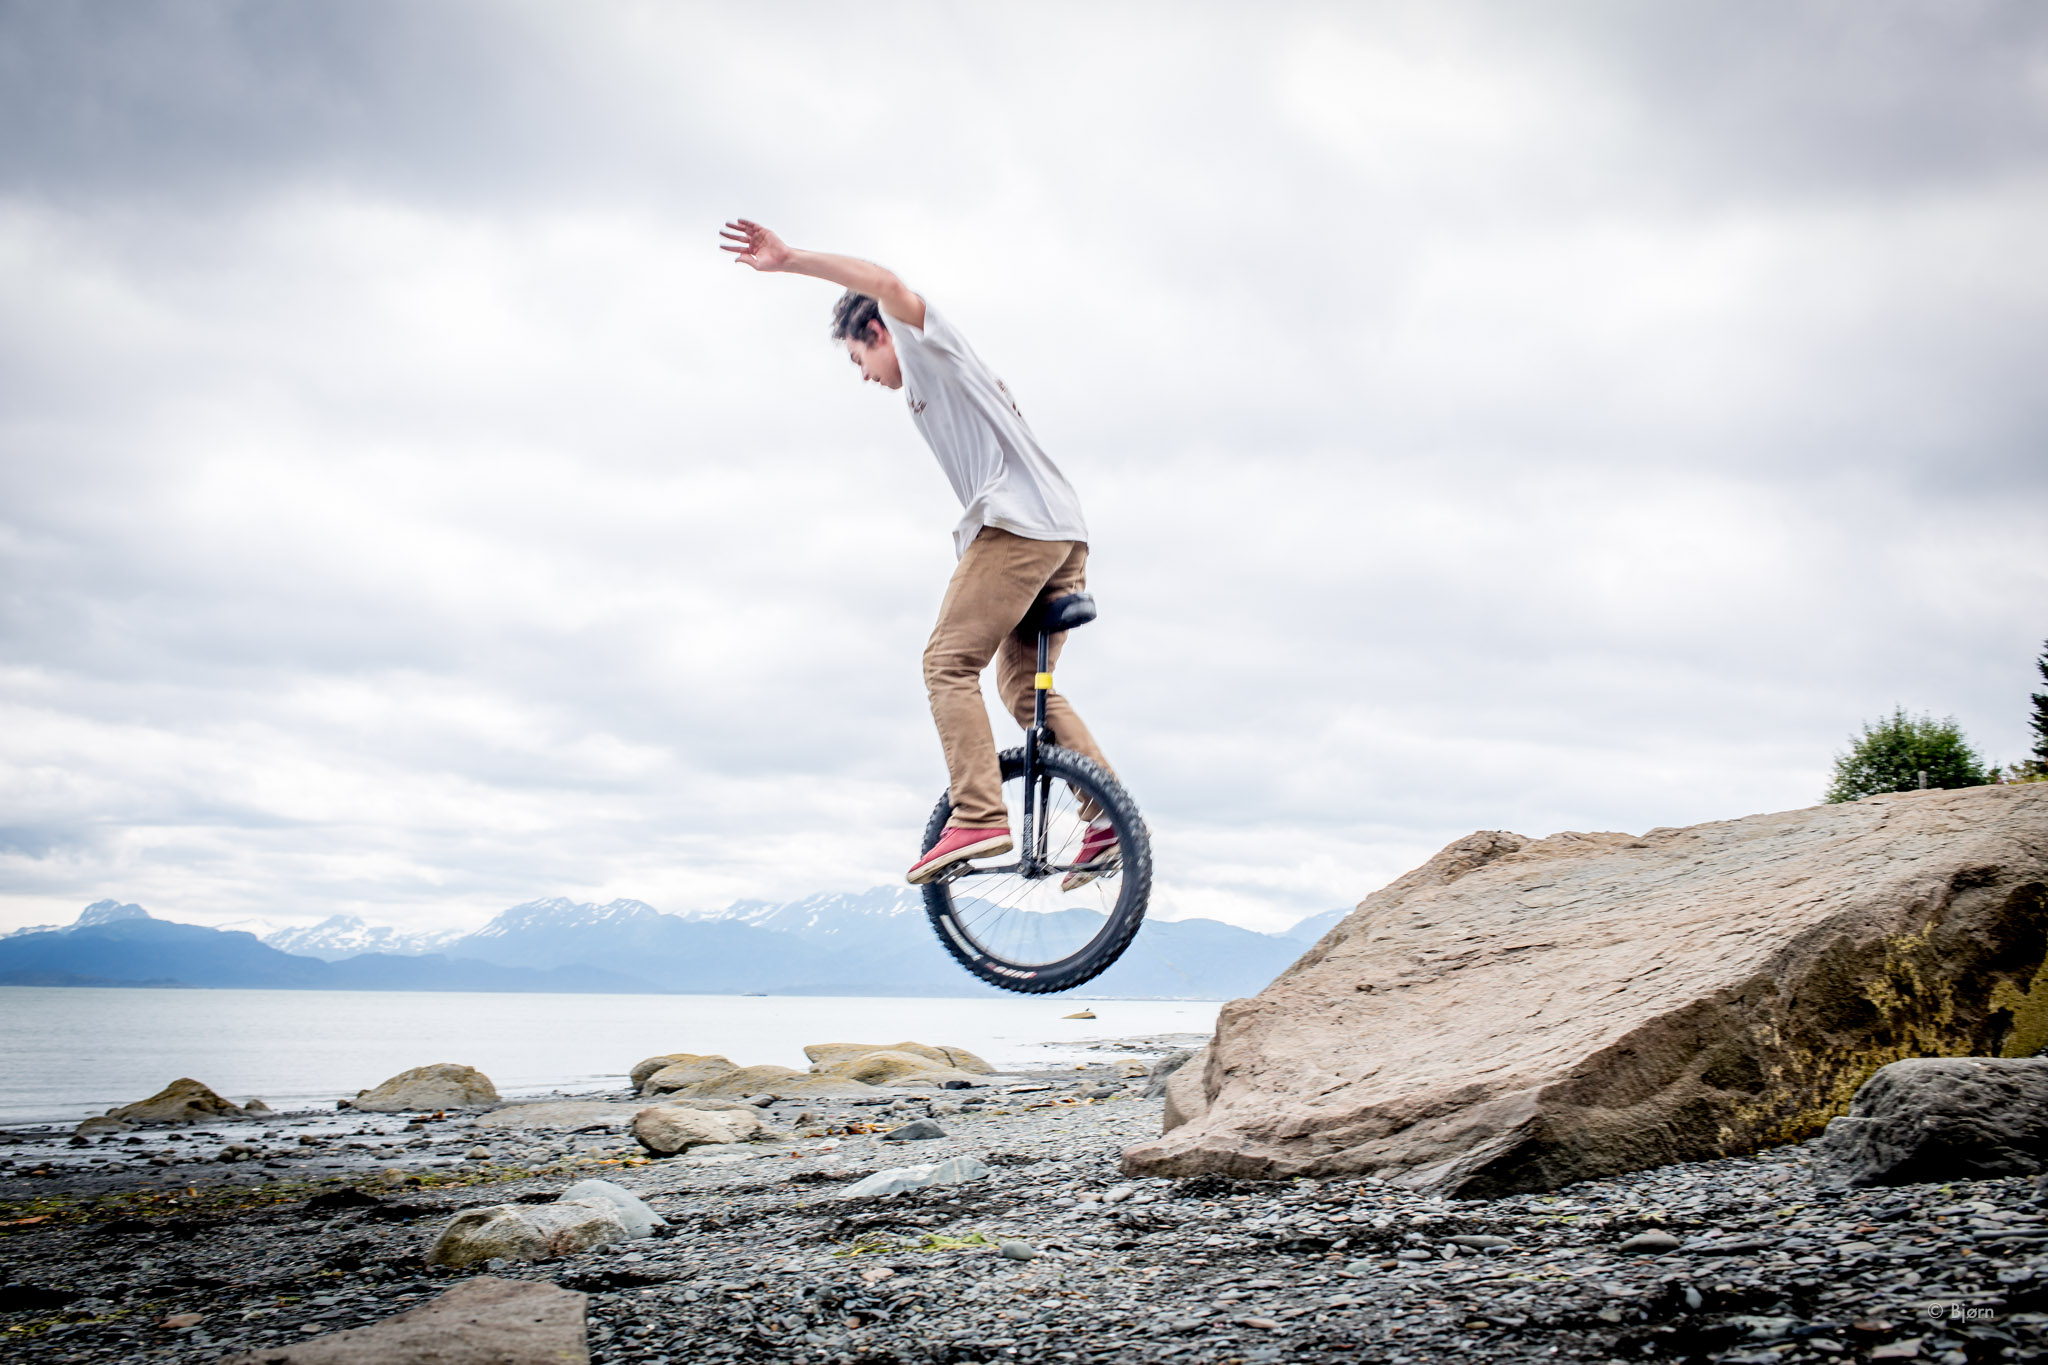 Noah Rough-Terrain Unicycling The Beach